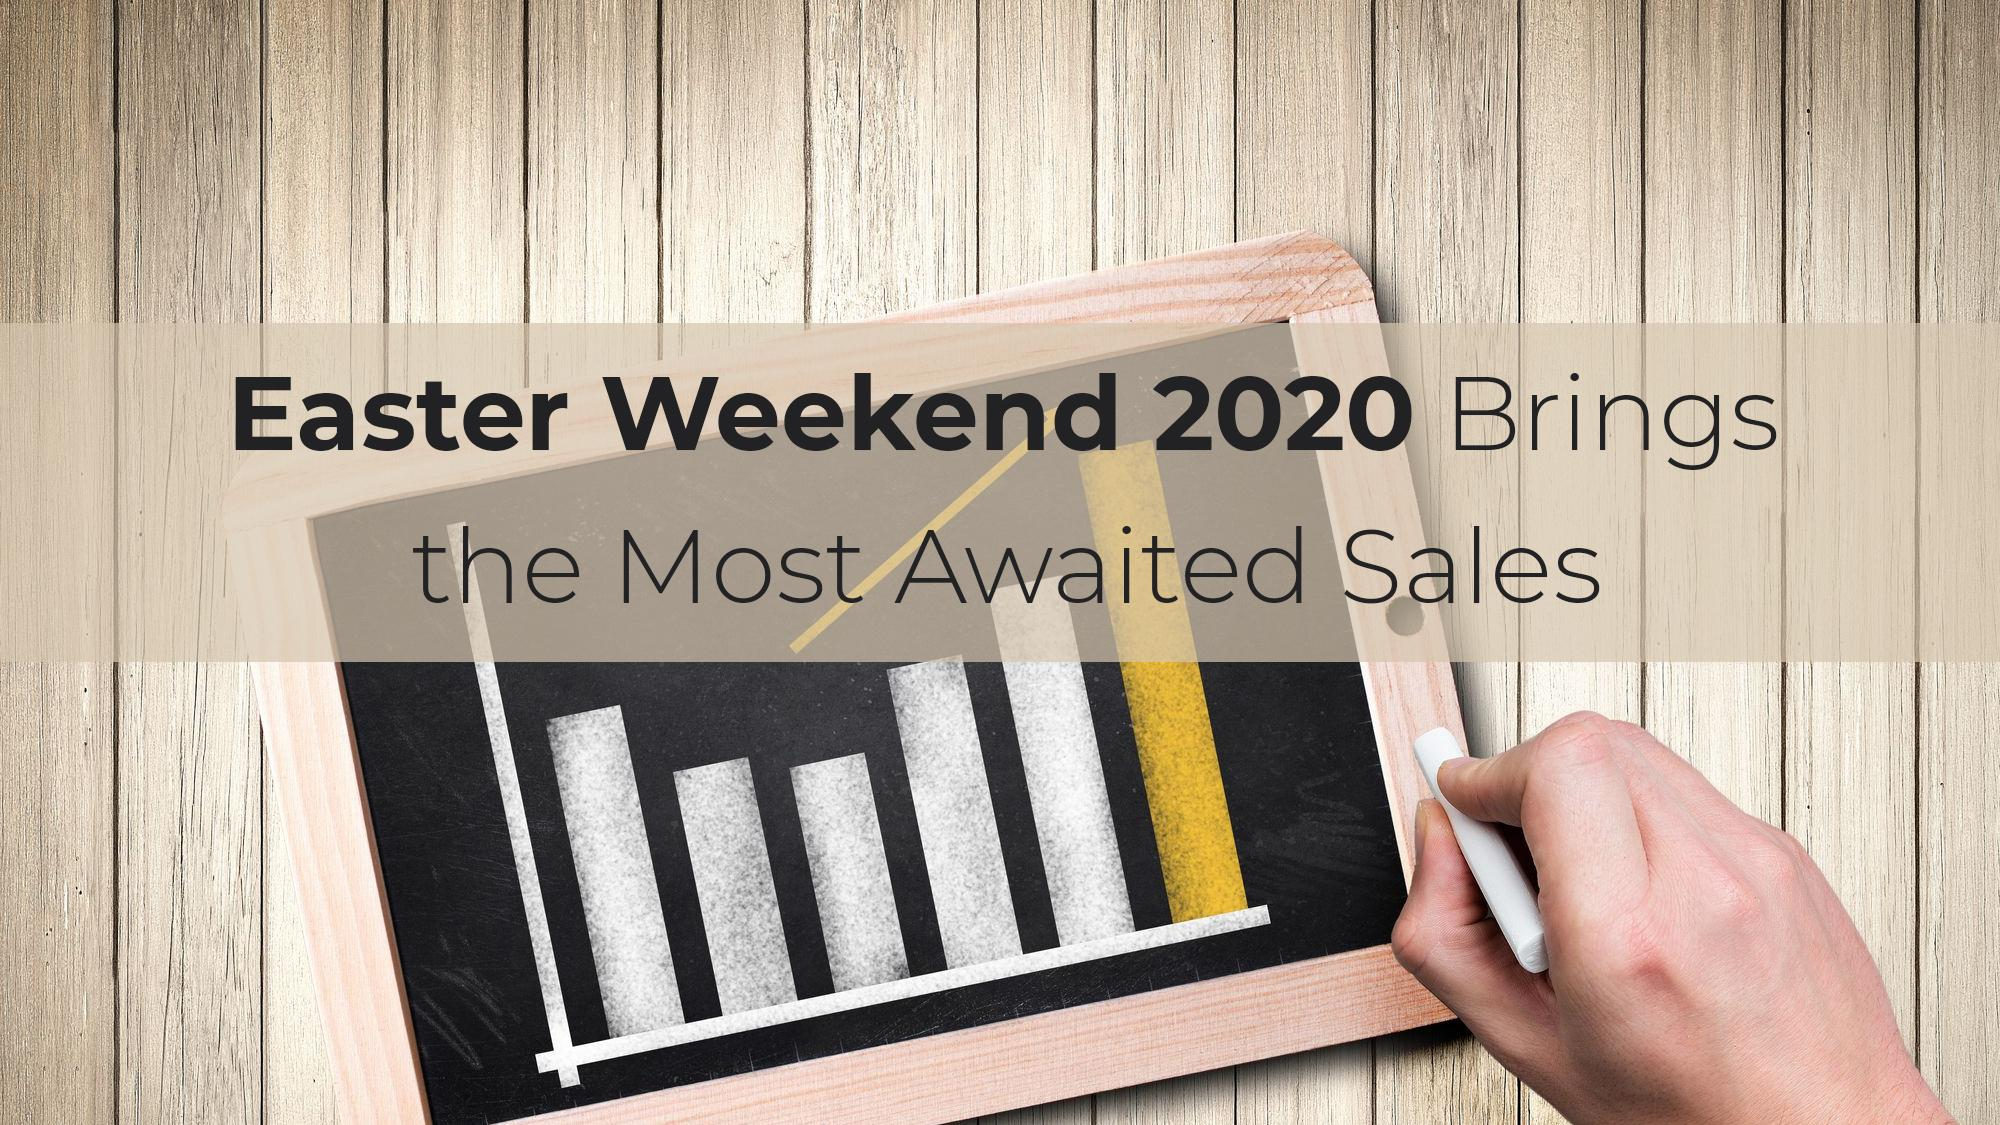 Easter Weekend 2020 Brings the Most Awaited Sales